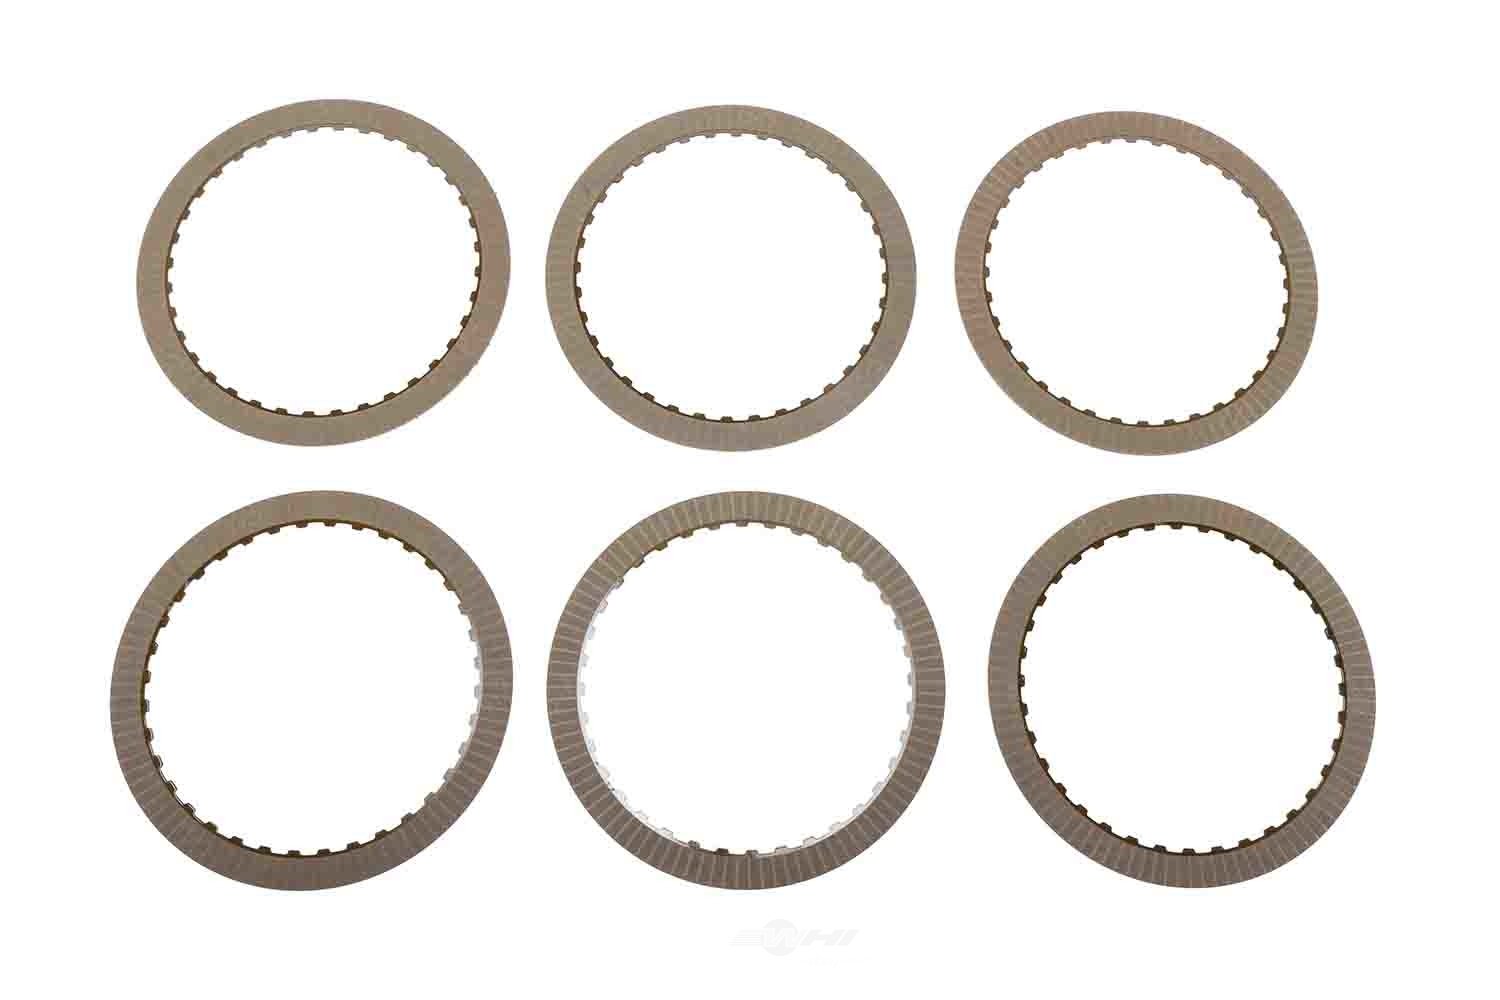 ACDELCO GM ORIGINAL EQUIPMENT - Transmission Clutch Friction Plate - DCB 24240221